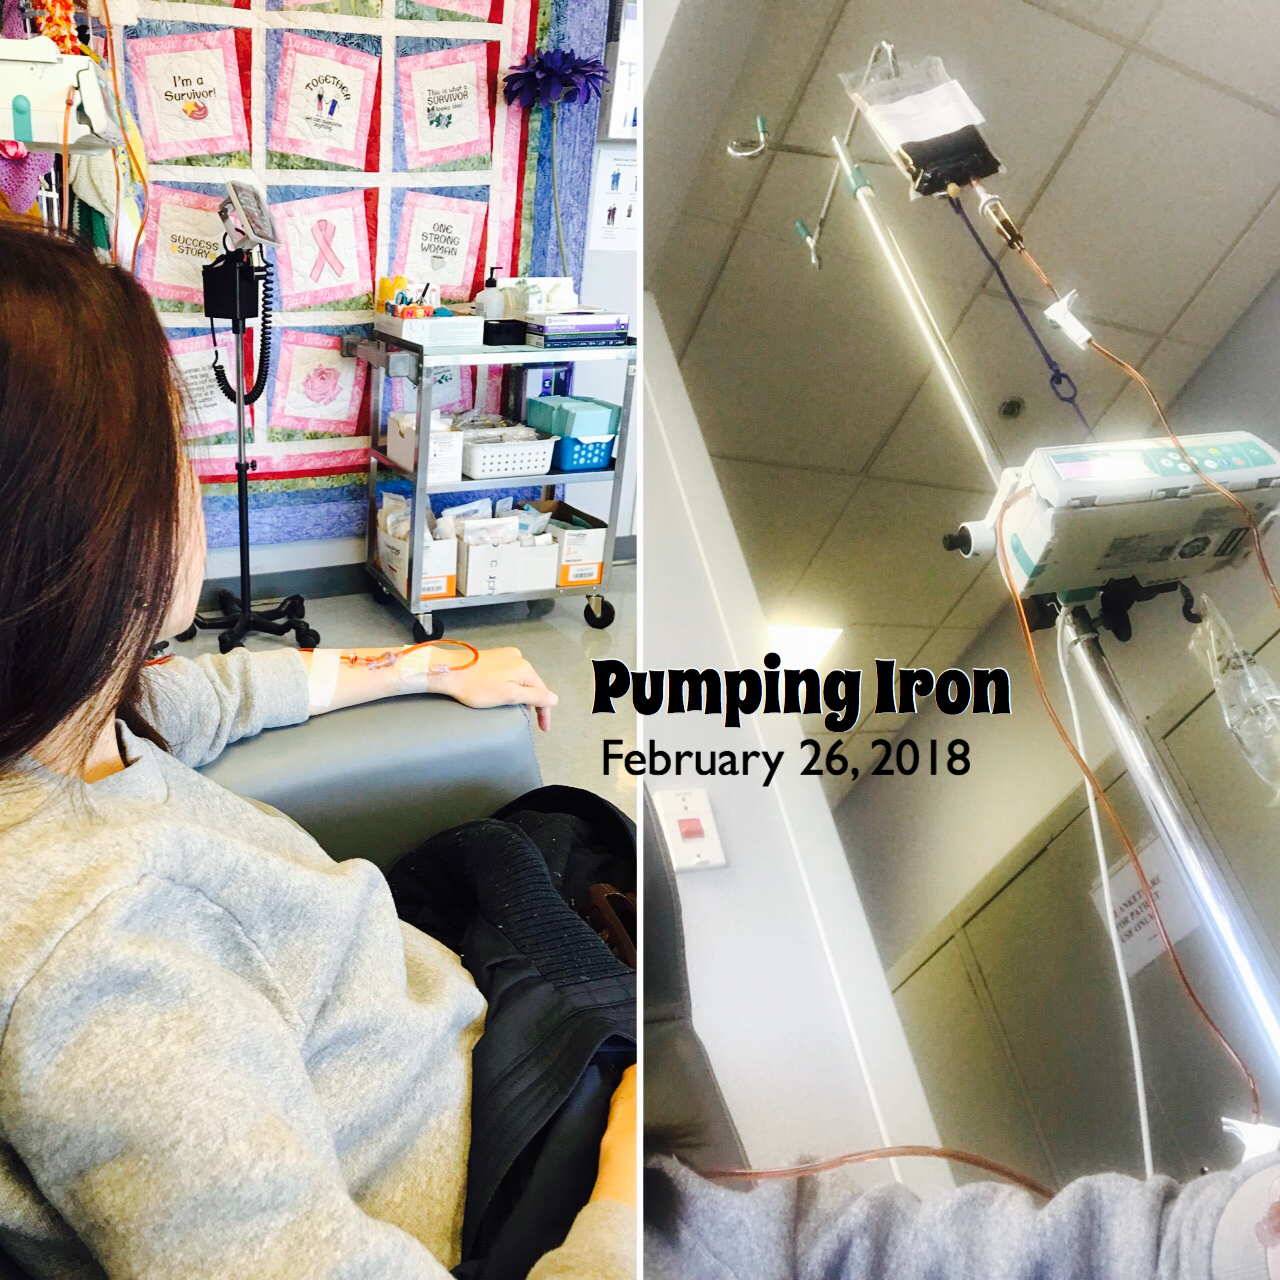 Update :   February 28, 2018  - I felt fine after the infusion but the side effects of severe headache, mild nausea, chest, back, lower body aches and pains started the next day that still lingers on today, 2 days after.  My heart whispers a prayer for the next session to turn out well again with no complications and for me not to feel as run down afterwards.